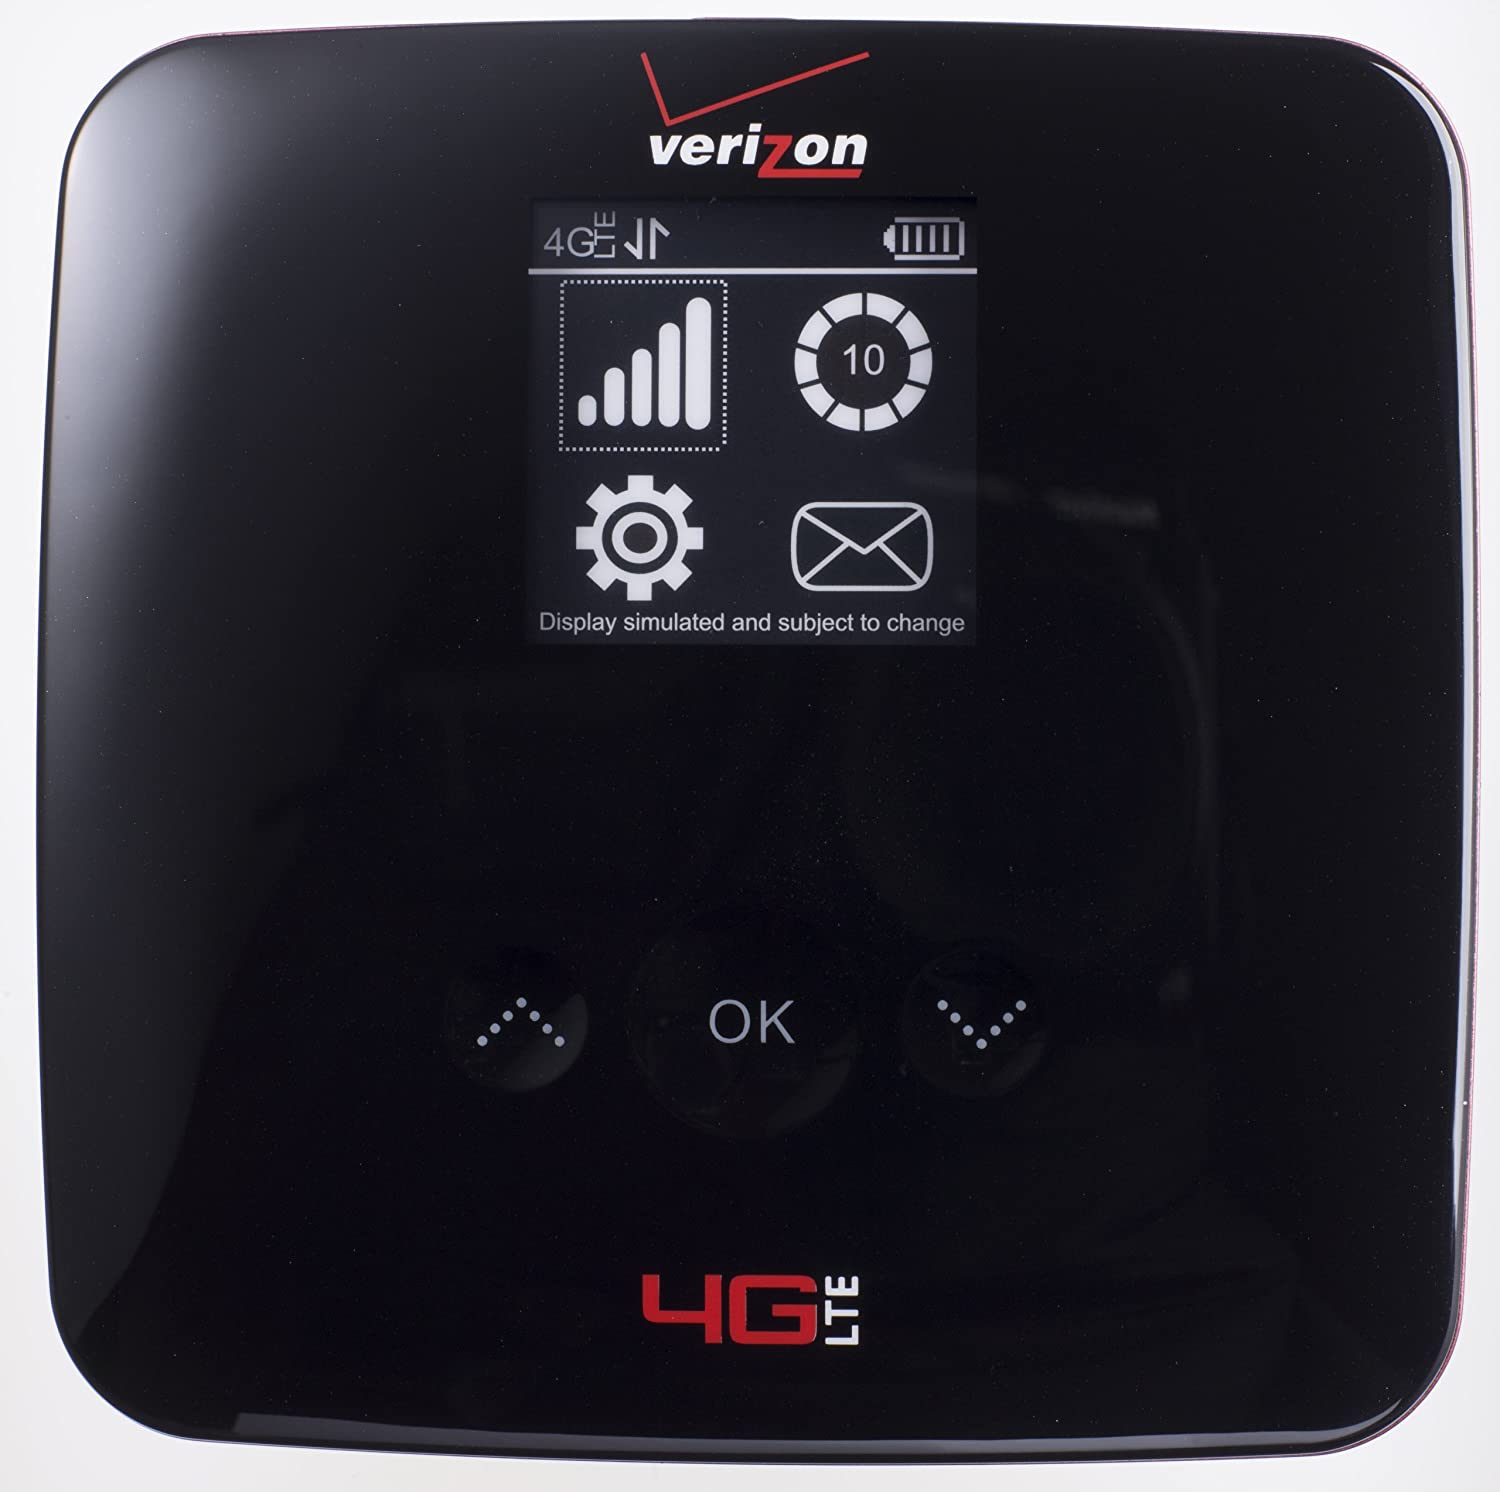 B00851O340 Verizon MiFi 890L Jetpack 4G Mobile Hotspot (Verizon Wireless) 91ZbIiuu8EL